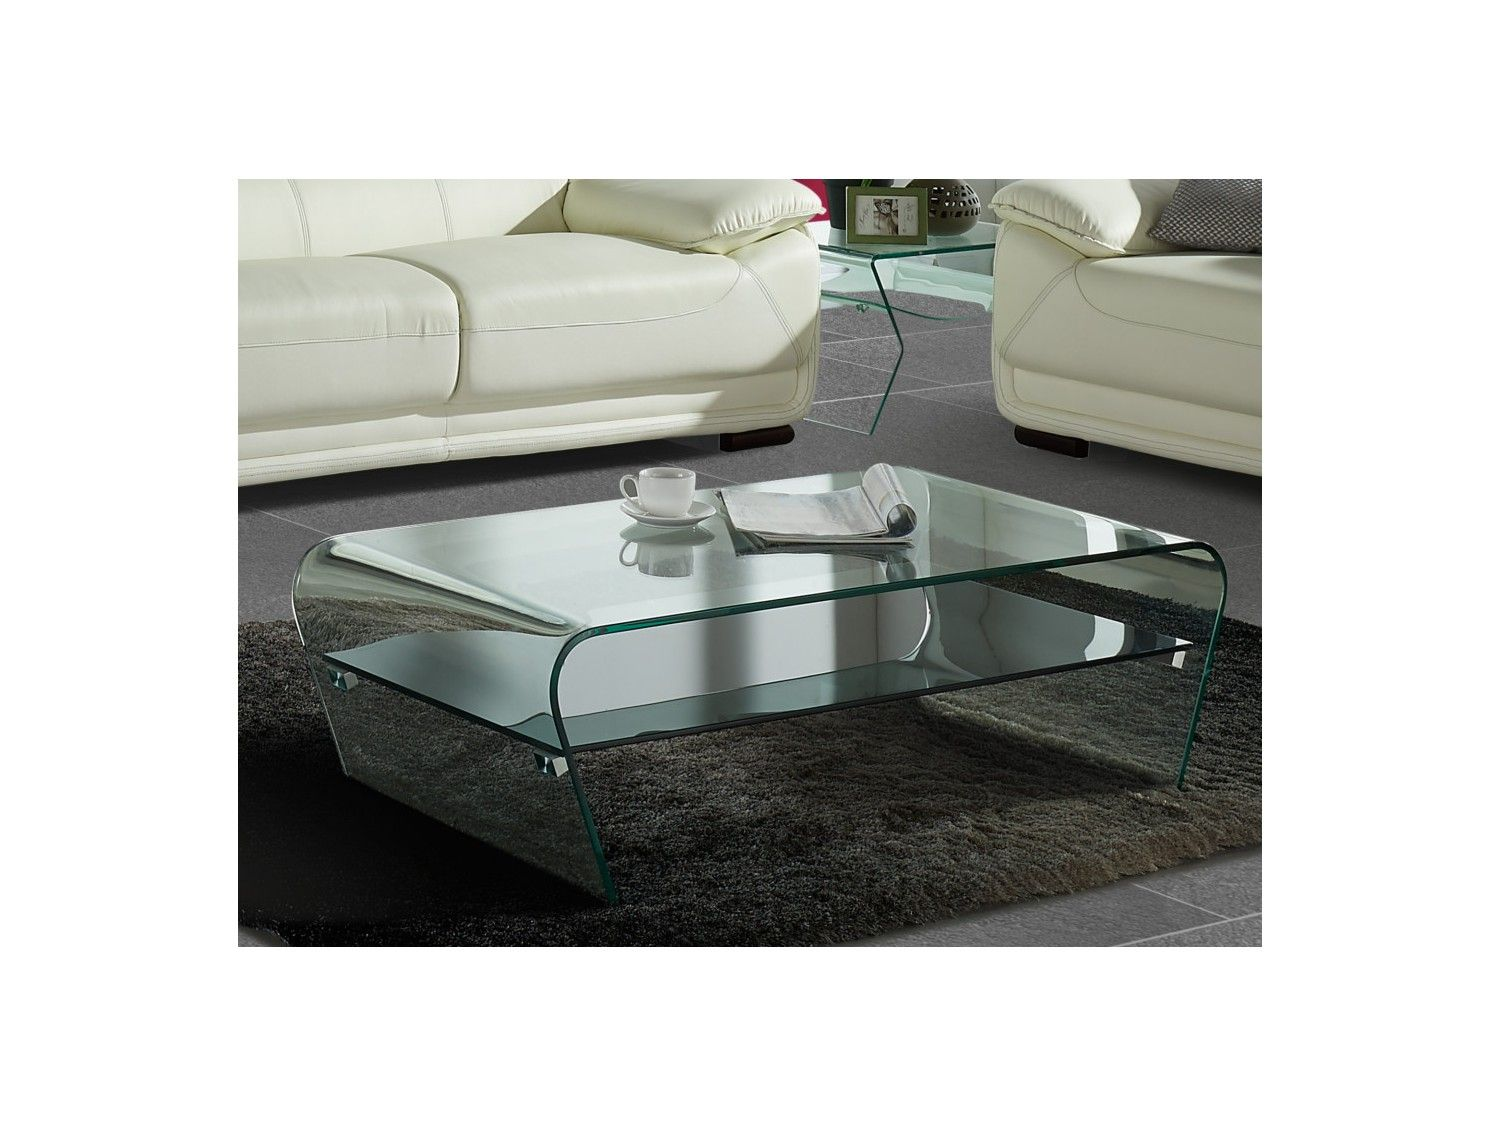 Table Basse Kelly Verre Trempe Tablette Noire Laquee Table